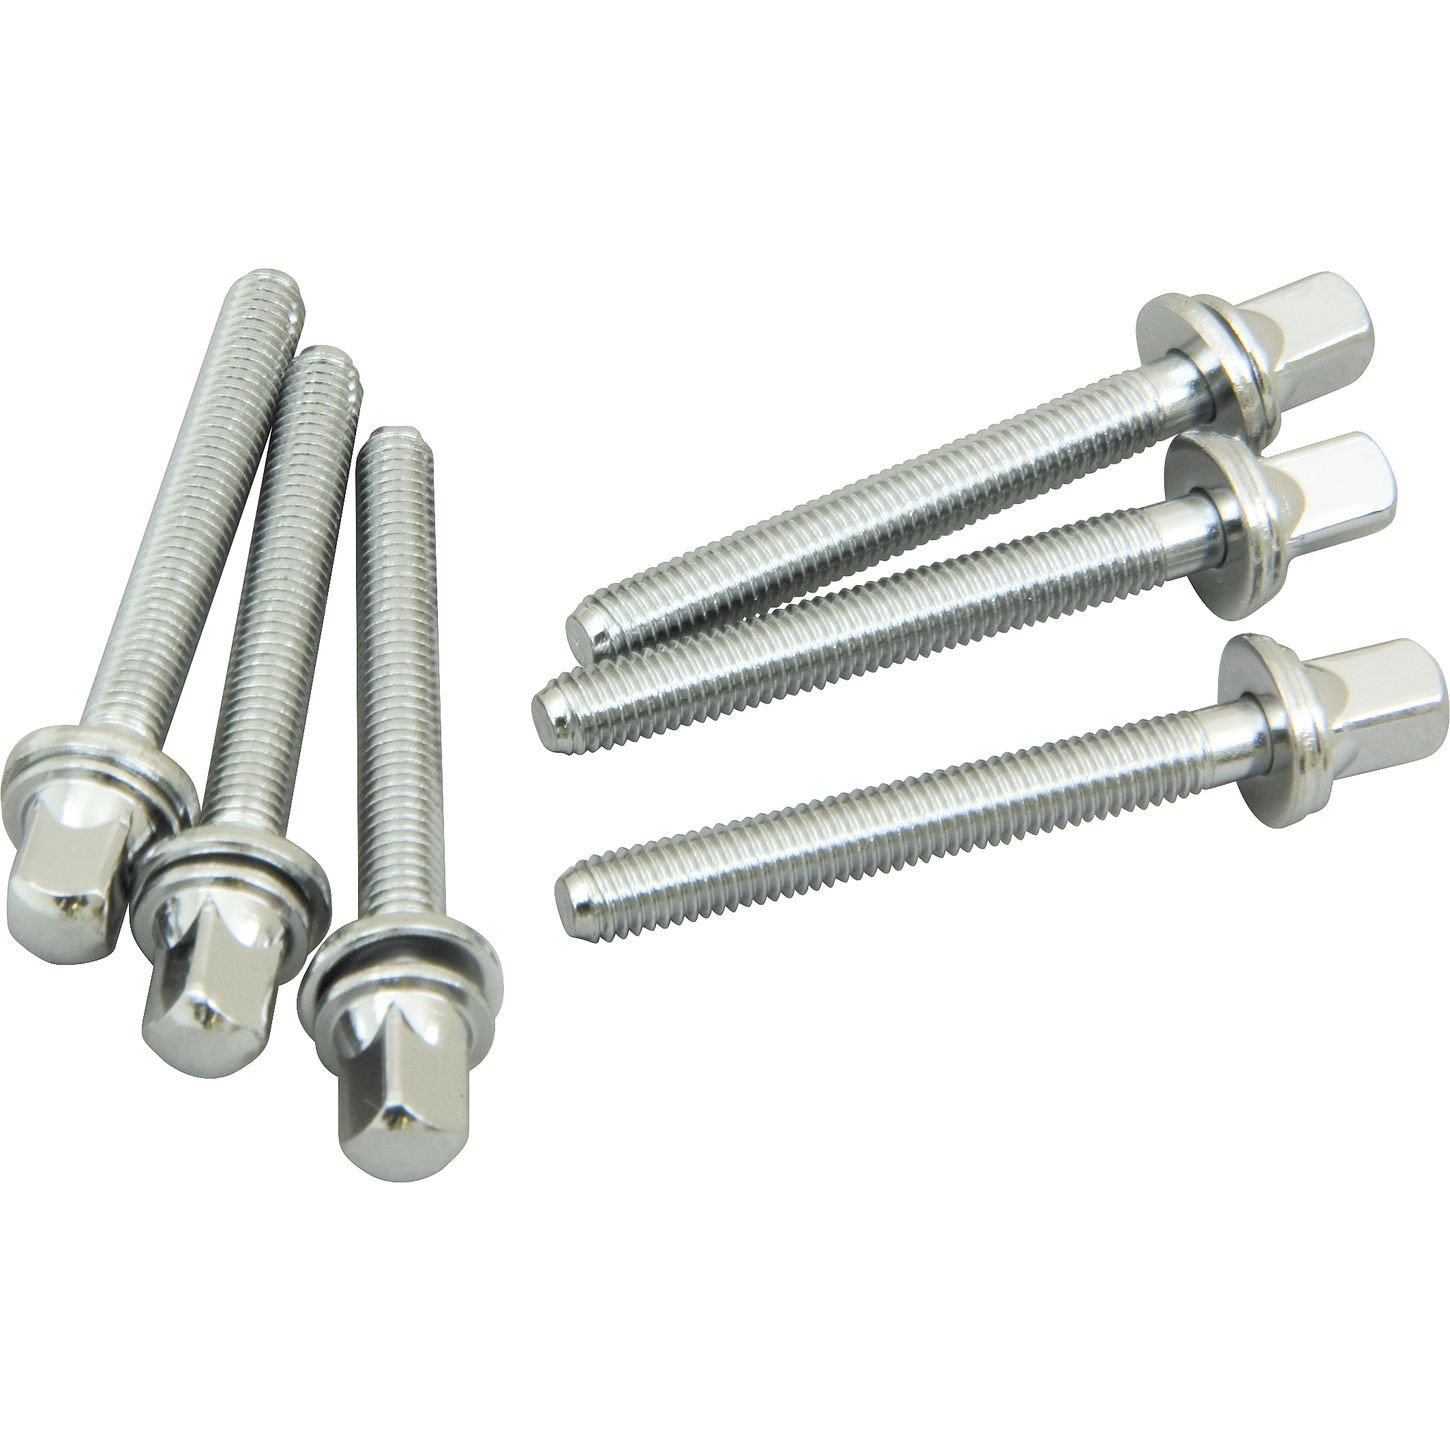 "Gibraltar 1-5/8"" Tension Rod (6-Pack)"